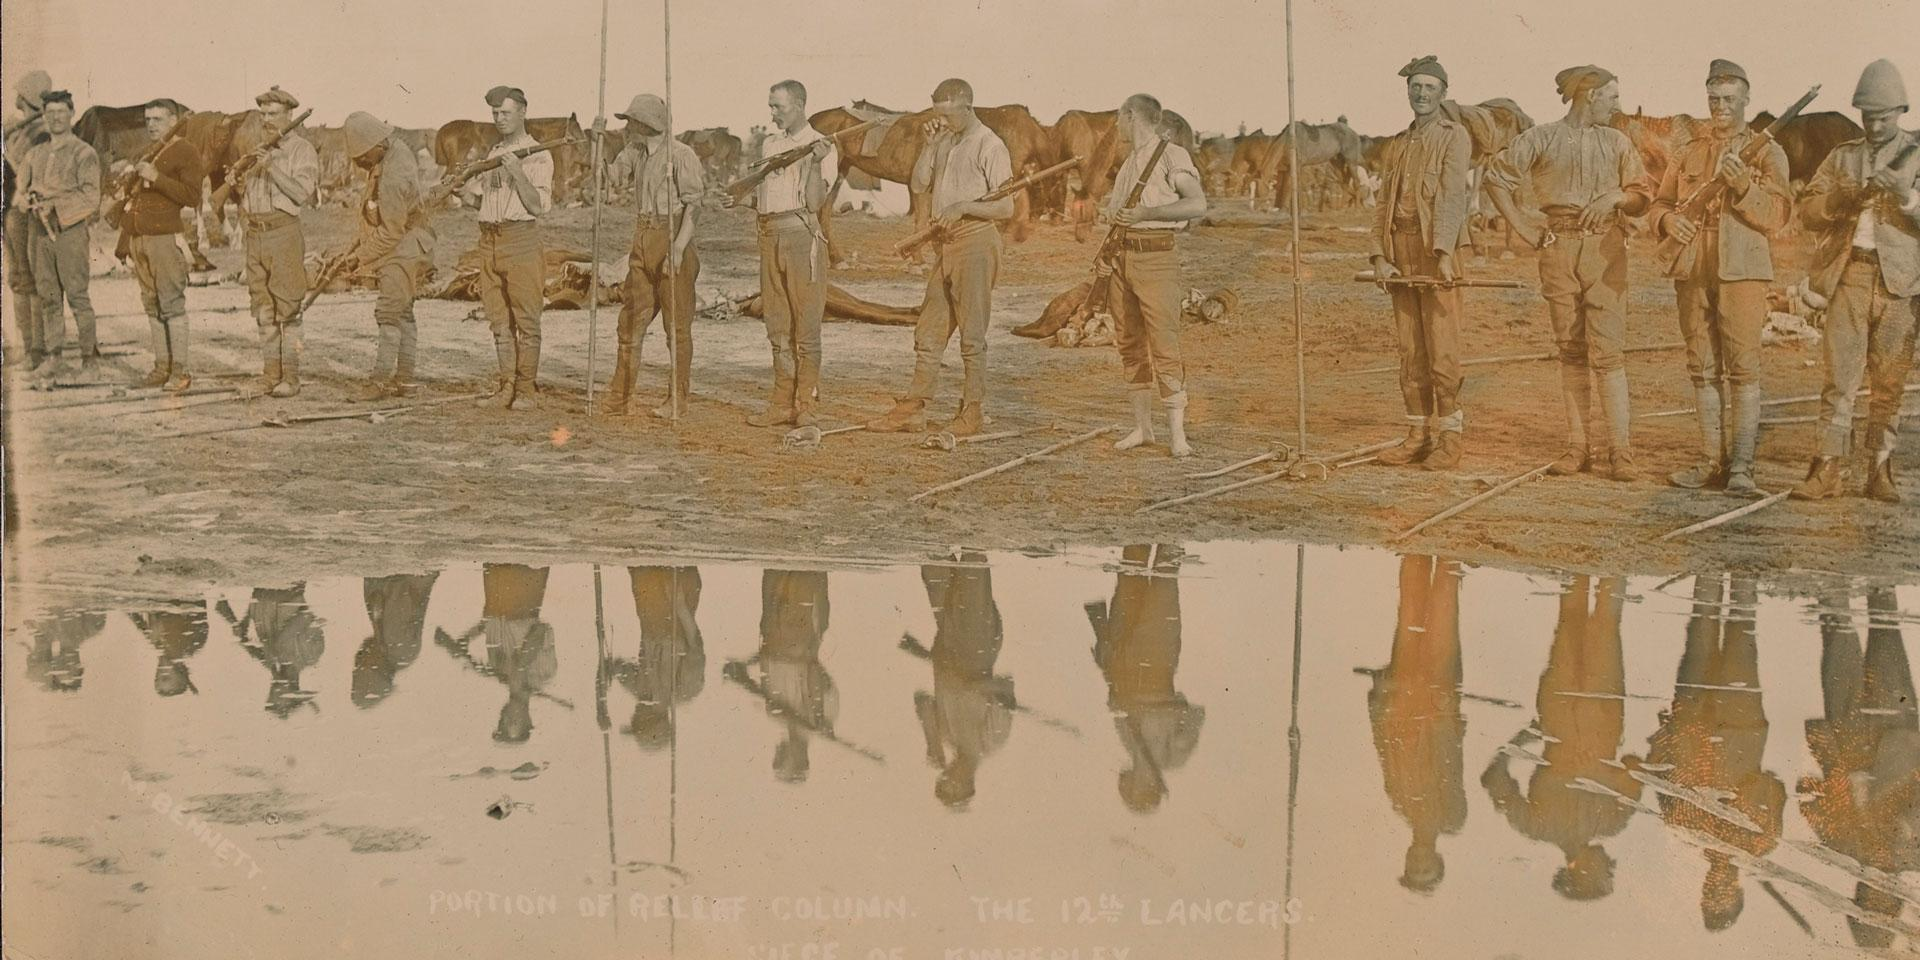 Members of the 12th Royal Lancers, Relief of Kimberley, 1900